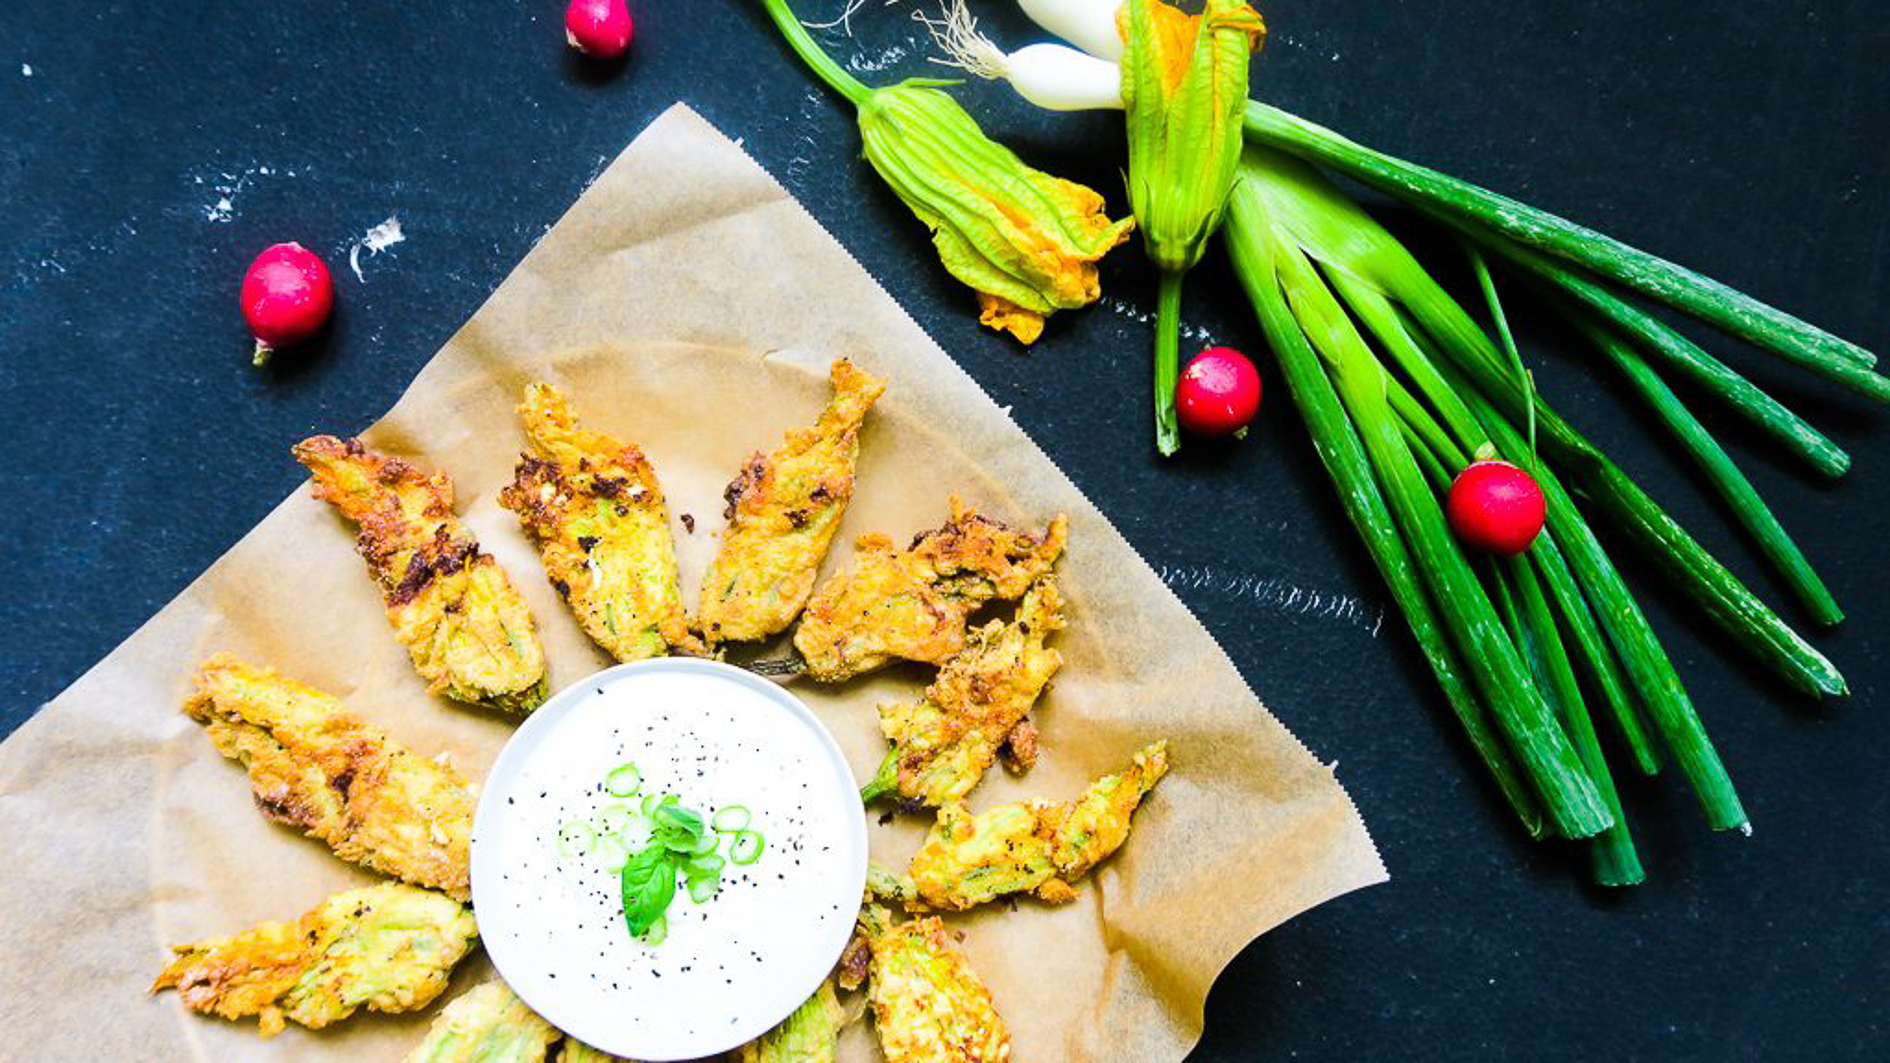 Ricotta Stuffed Zucchini Flowers with a dip